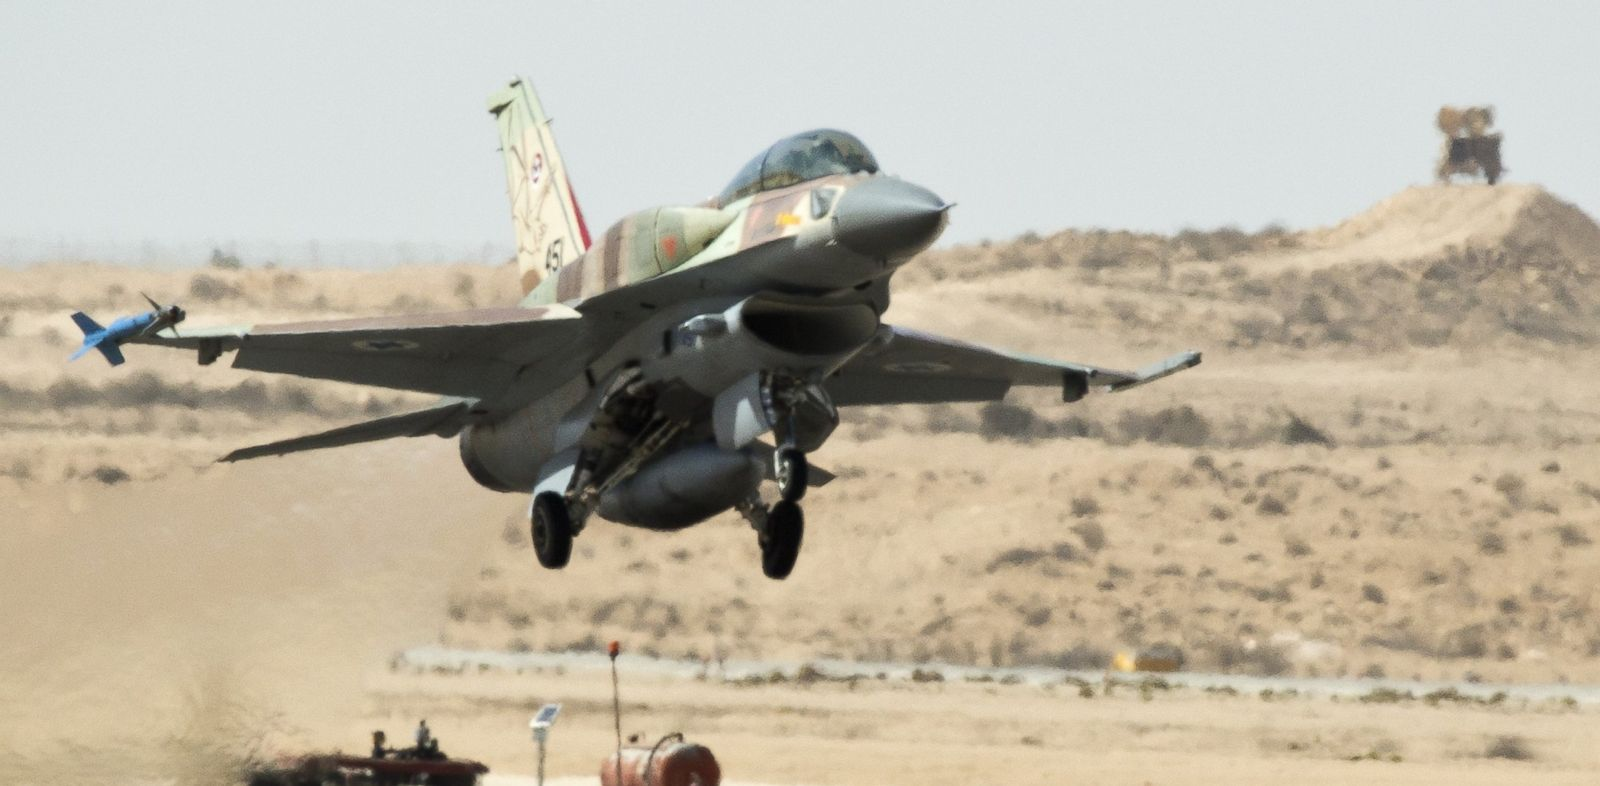 PHOTO: An Israeli F-16 I fighter jet takes off during a display for foreign media at the Ramon air force base in the Negev Desert, southern Israel, on October 21, 2013.